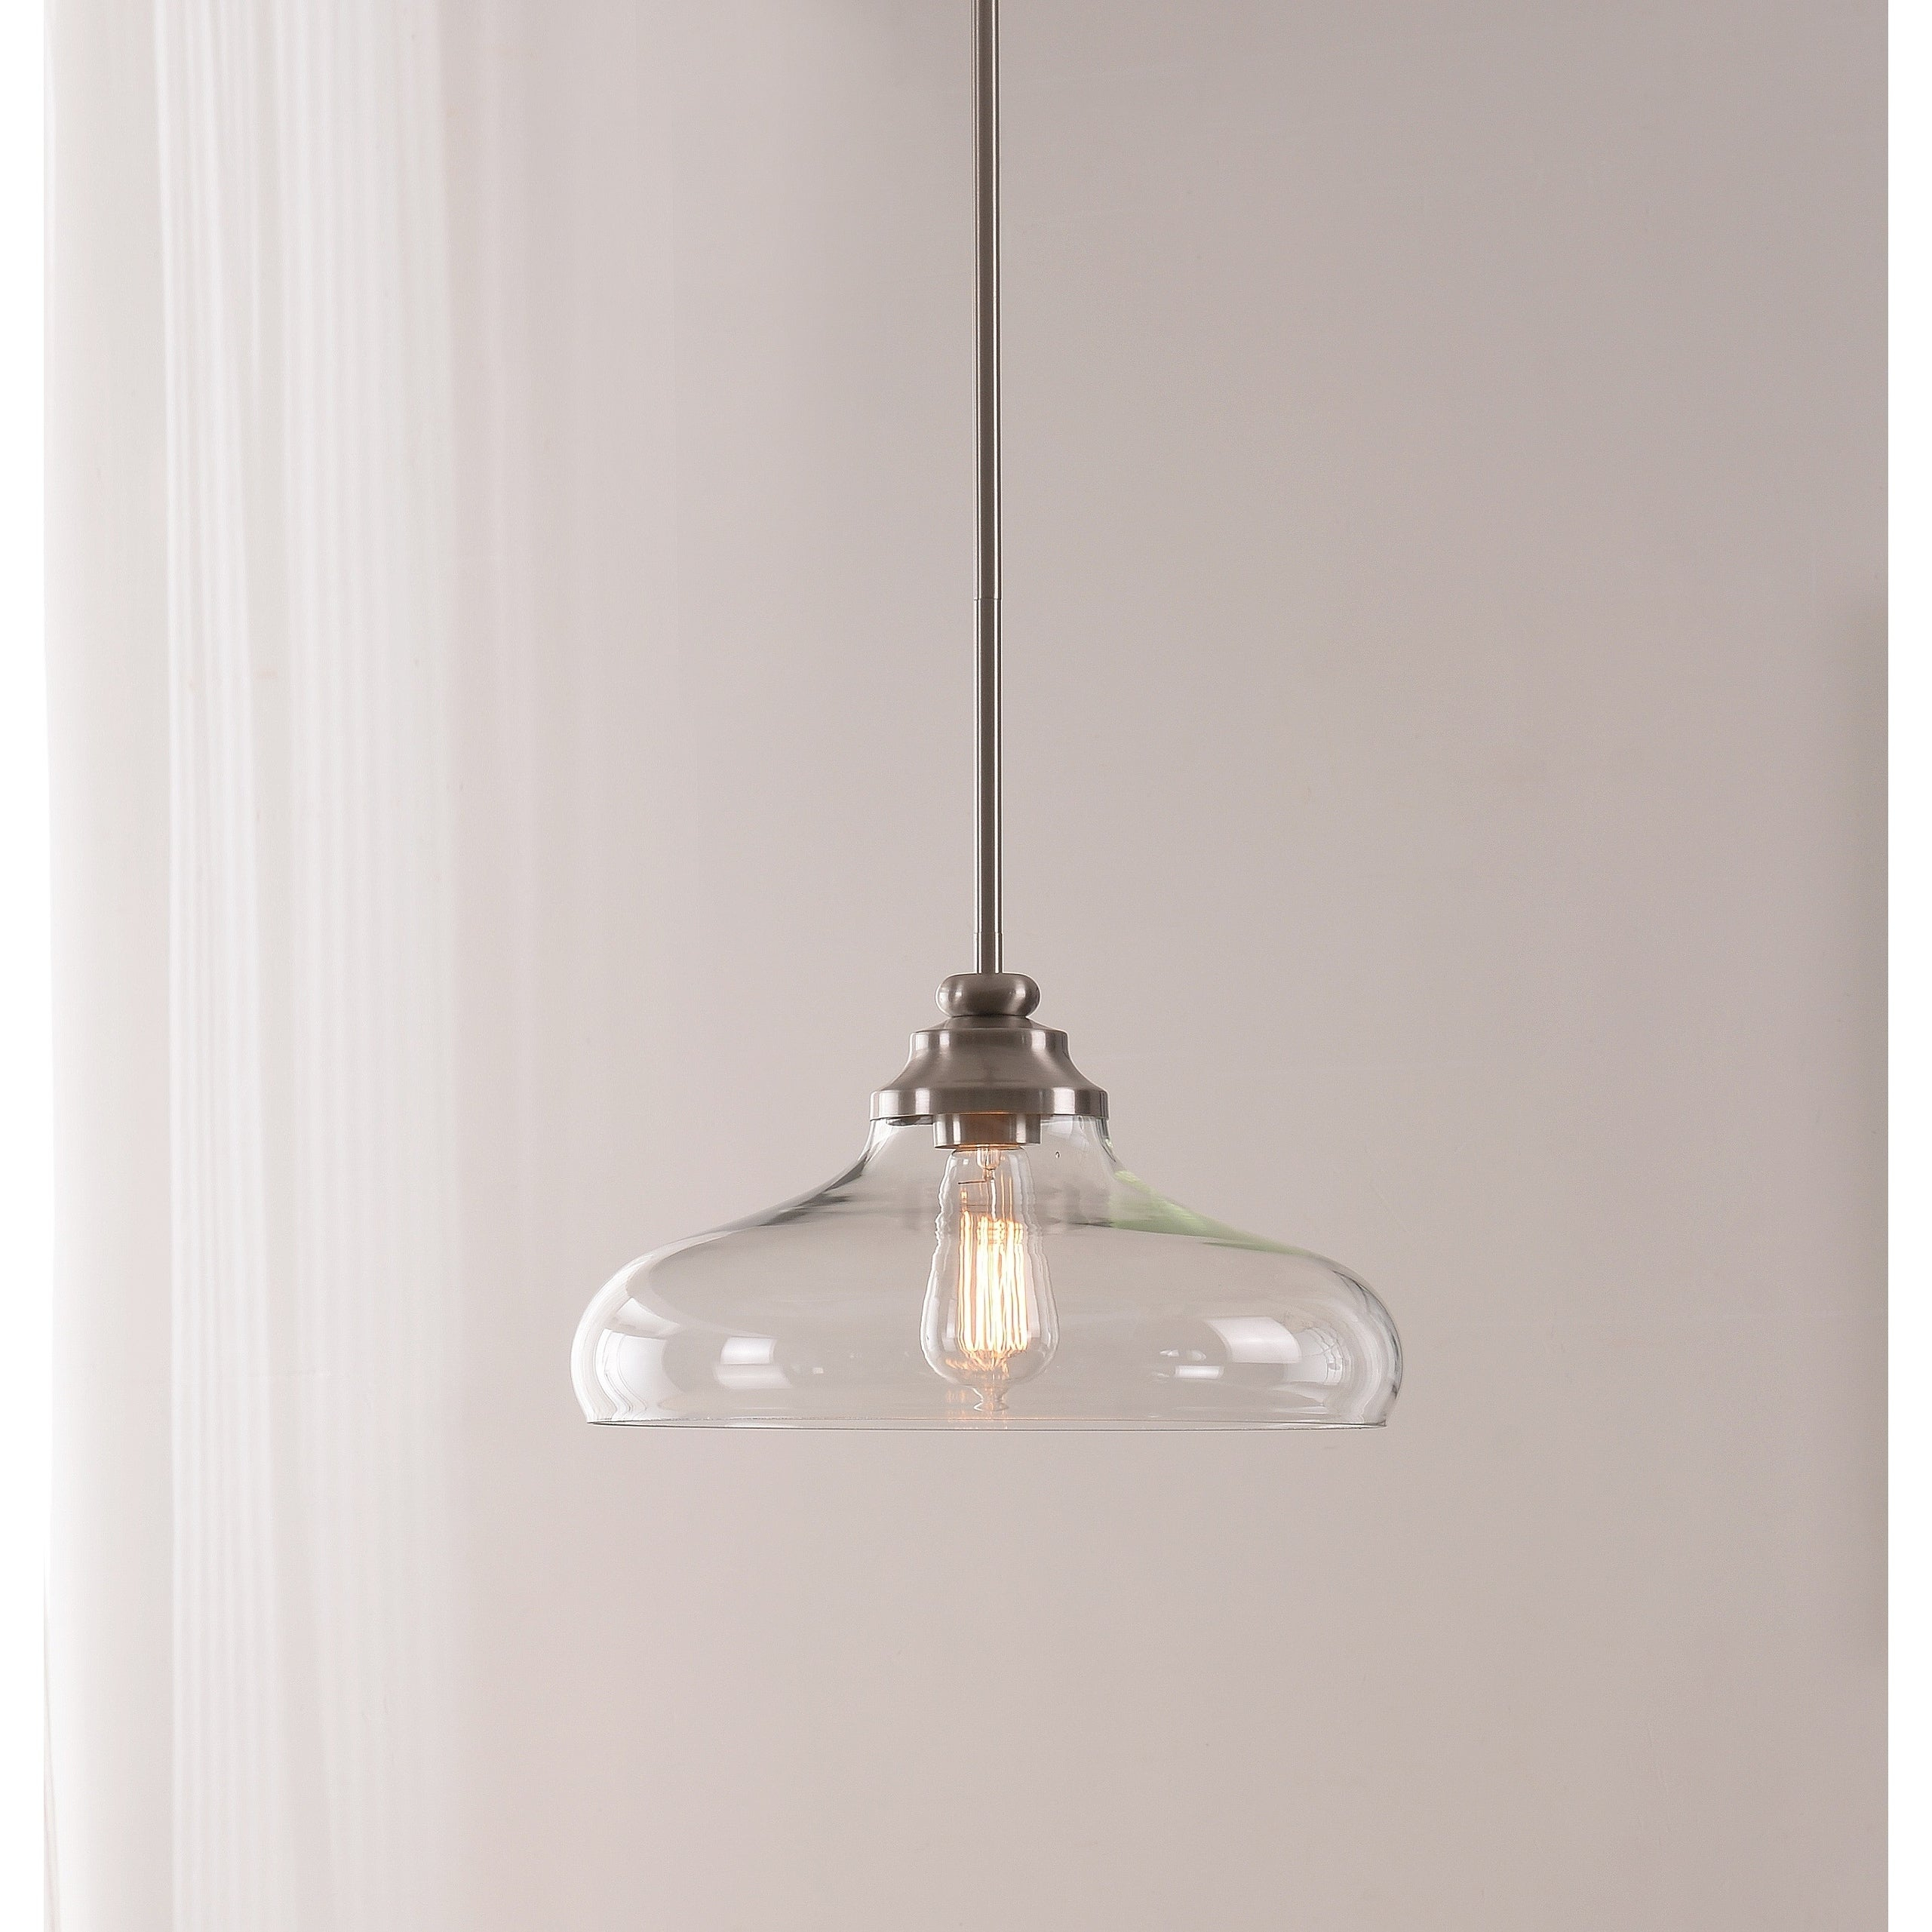 Caden 1 Light Pendant – Brushed Steel With Clear Glass Pertaining To Cayden 1 Light Single Globe Pendants (View 5 of 30)